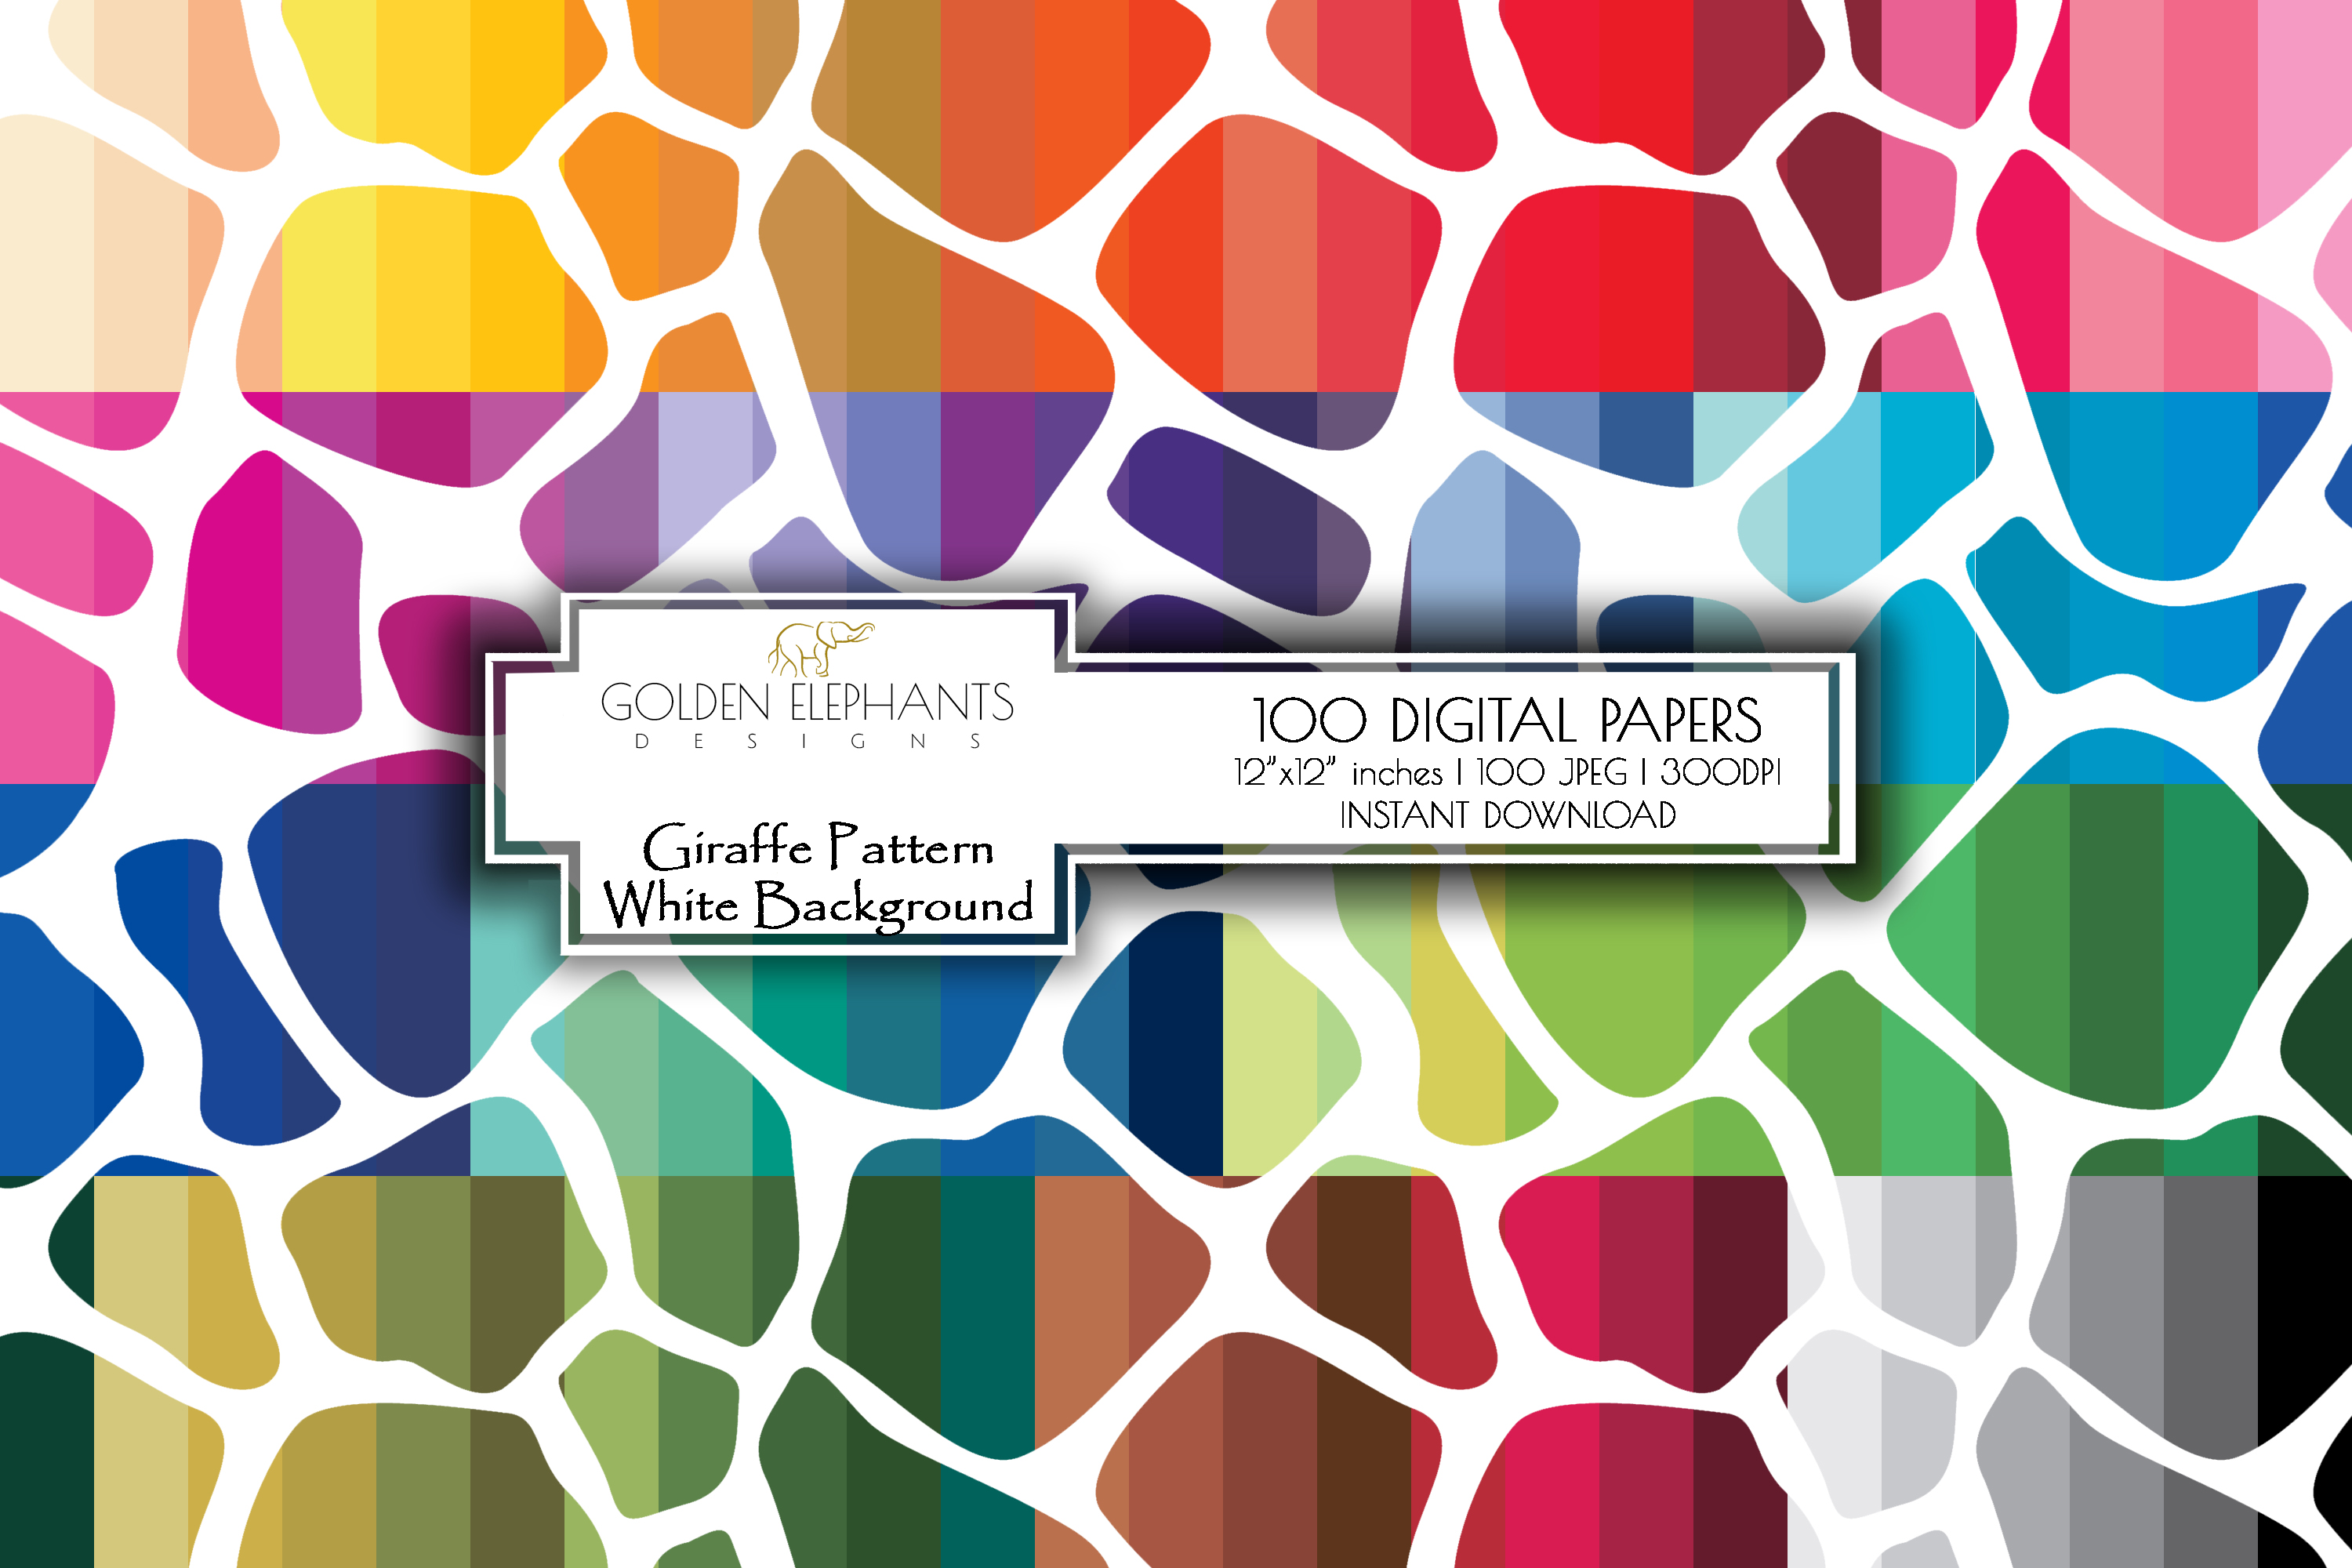 100 Giraffe Pattern w/ White Background Digital Paper example image 1